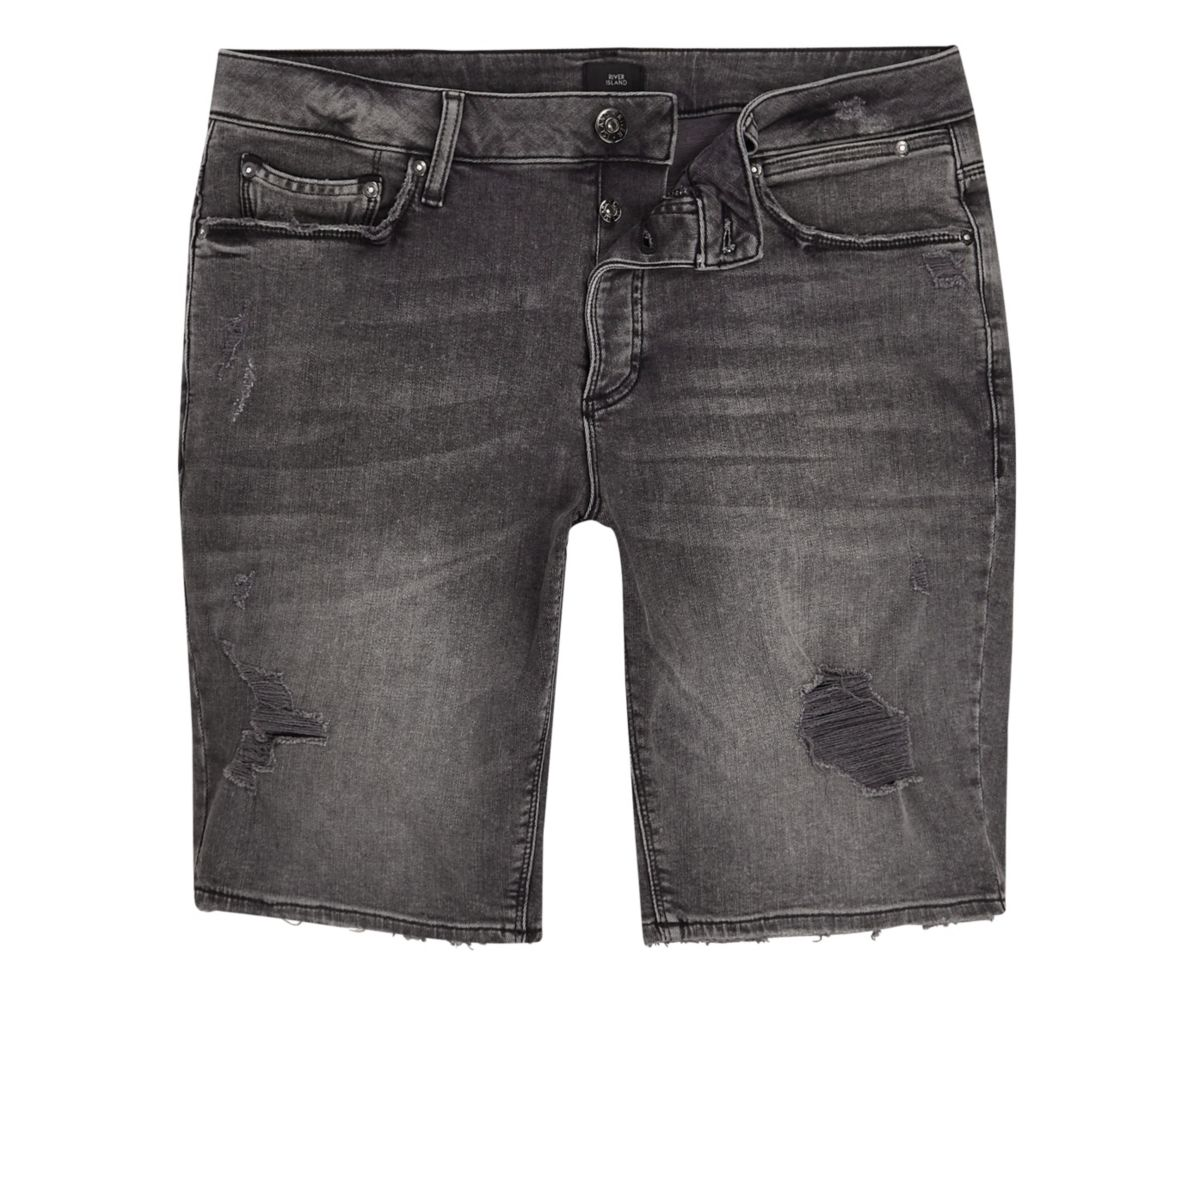 Washed black distressed skinny denim shorts